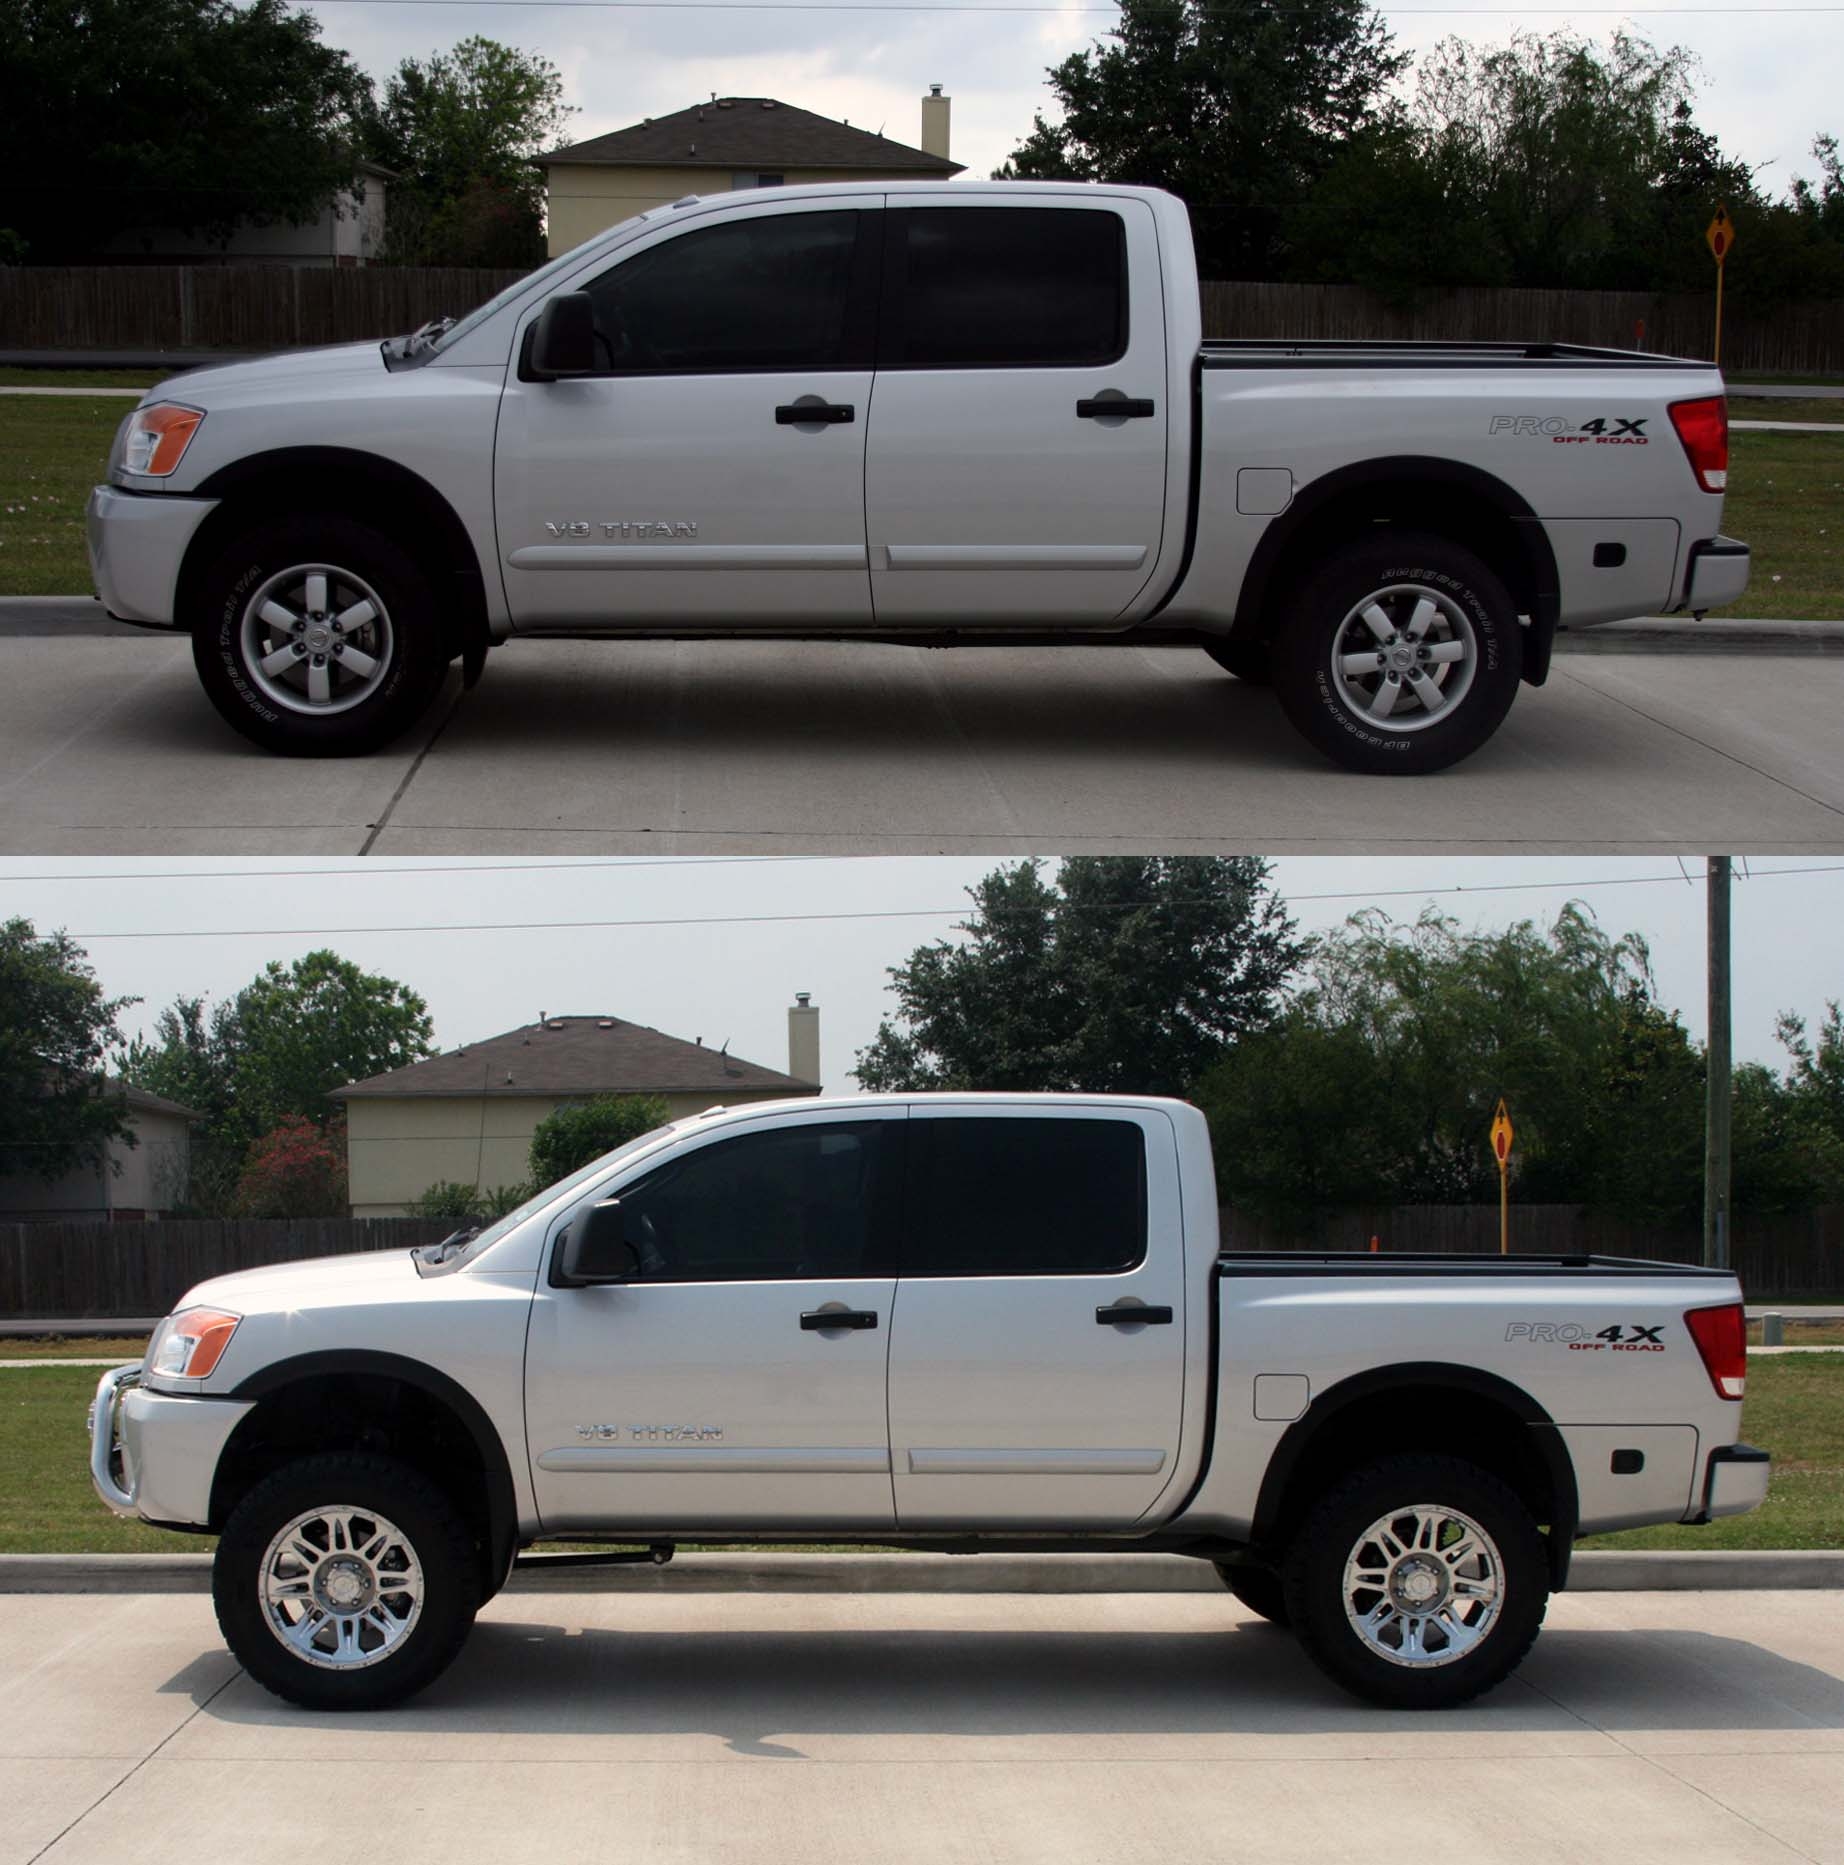 Pics of Before and After Lift - Nissan Titan Forum